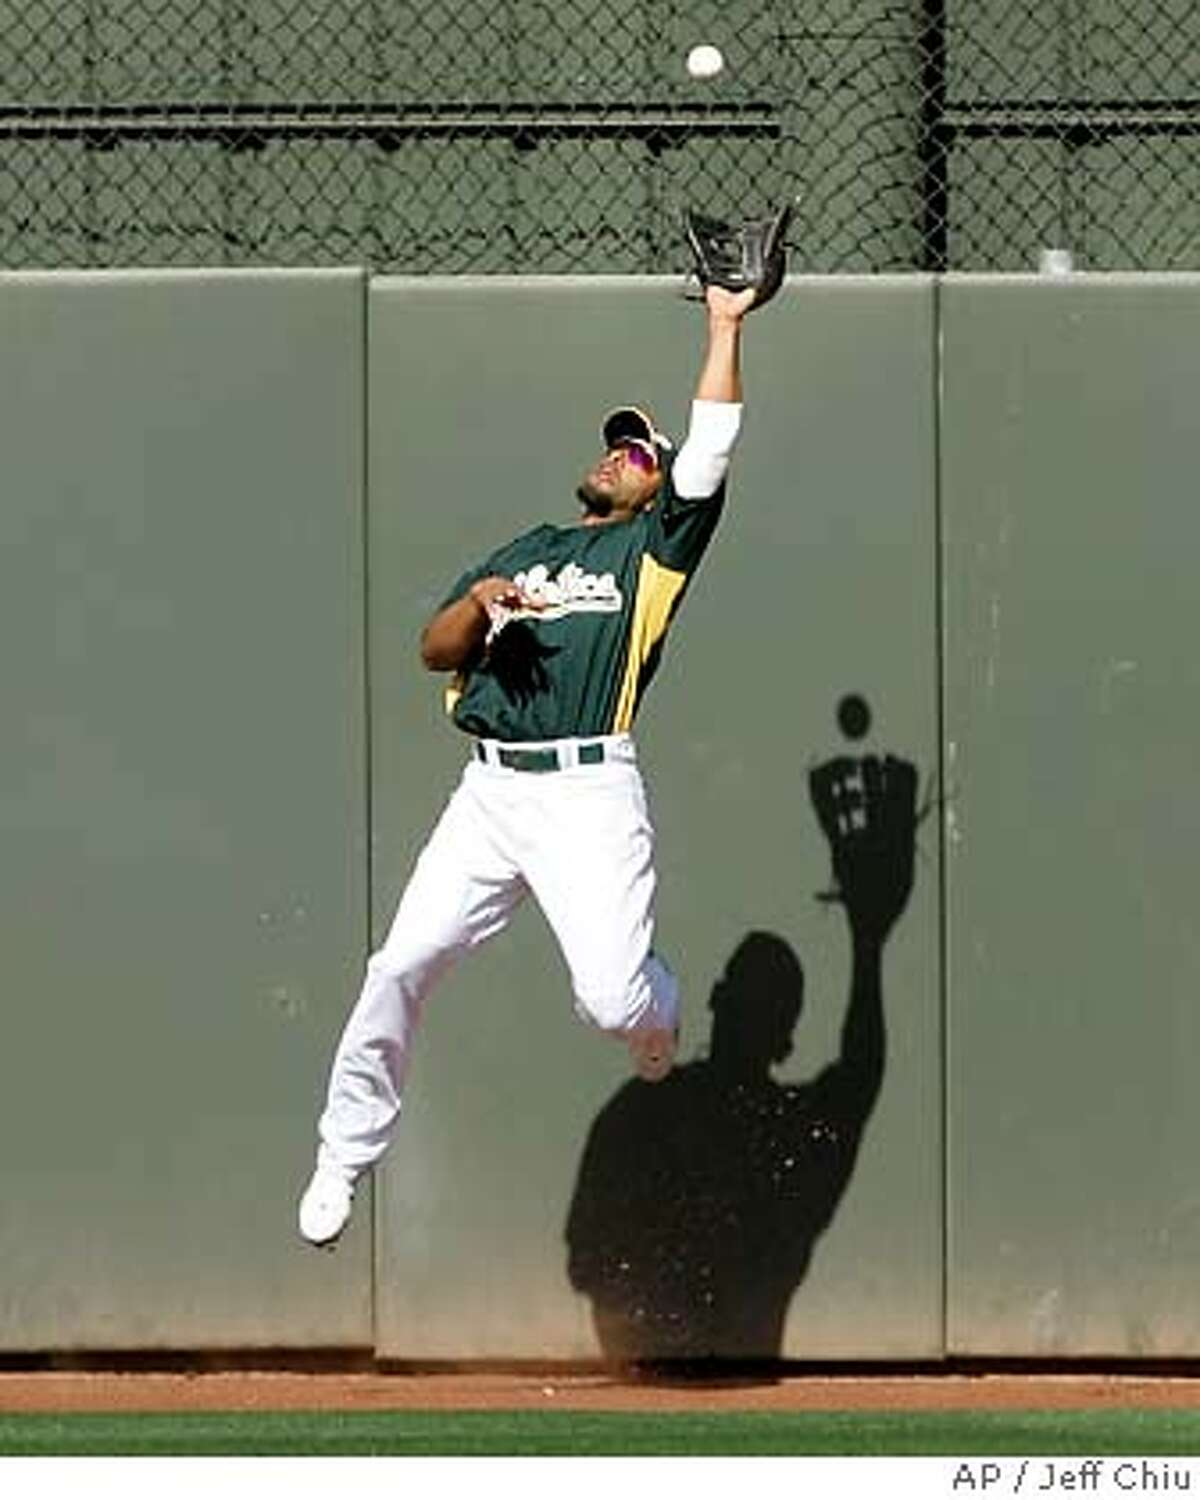 Oakland Athletics' Hiram Bocachica catches a fly ball hit by Chicago White Sox's Juan Uribe in the seventh inning of a spring training baseball game in Phoenix, Tuesday, March 20, 2007. (AP Photo/Jeff Chiu)